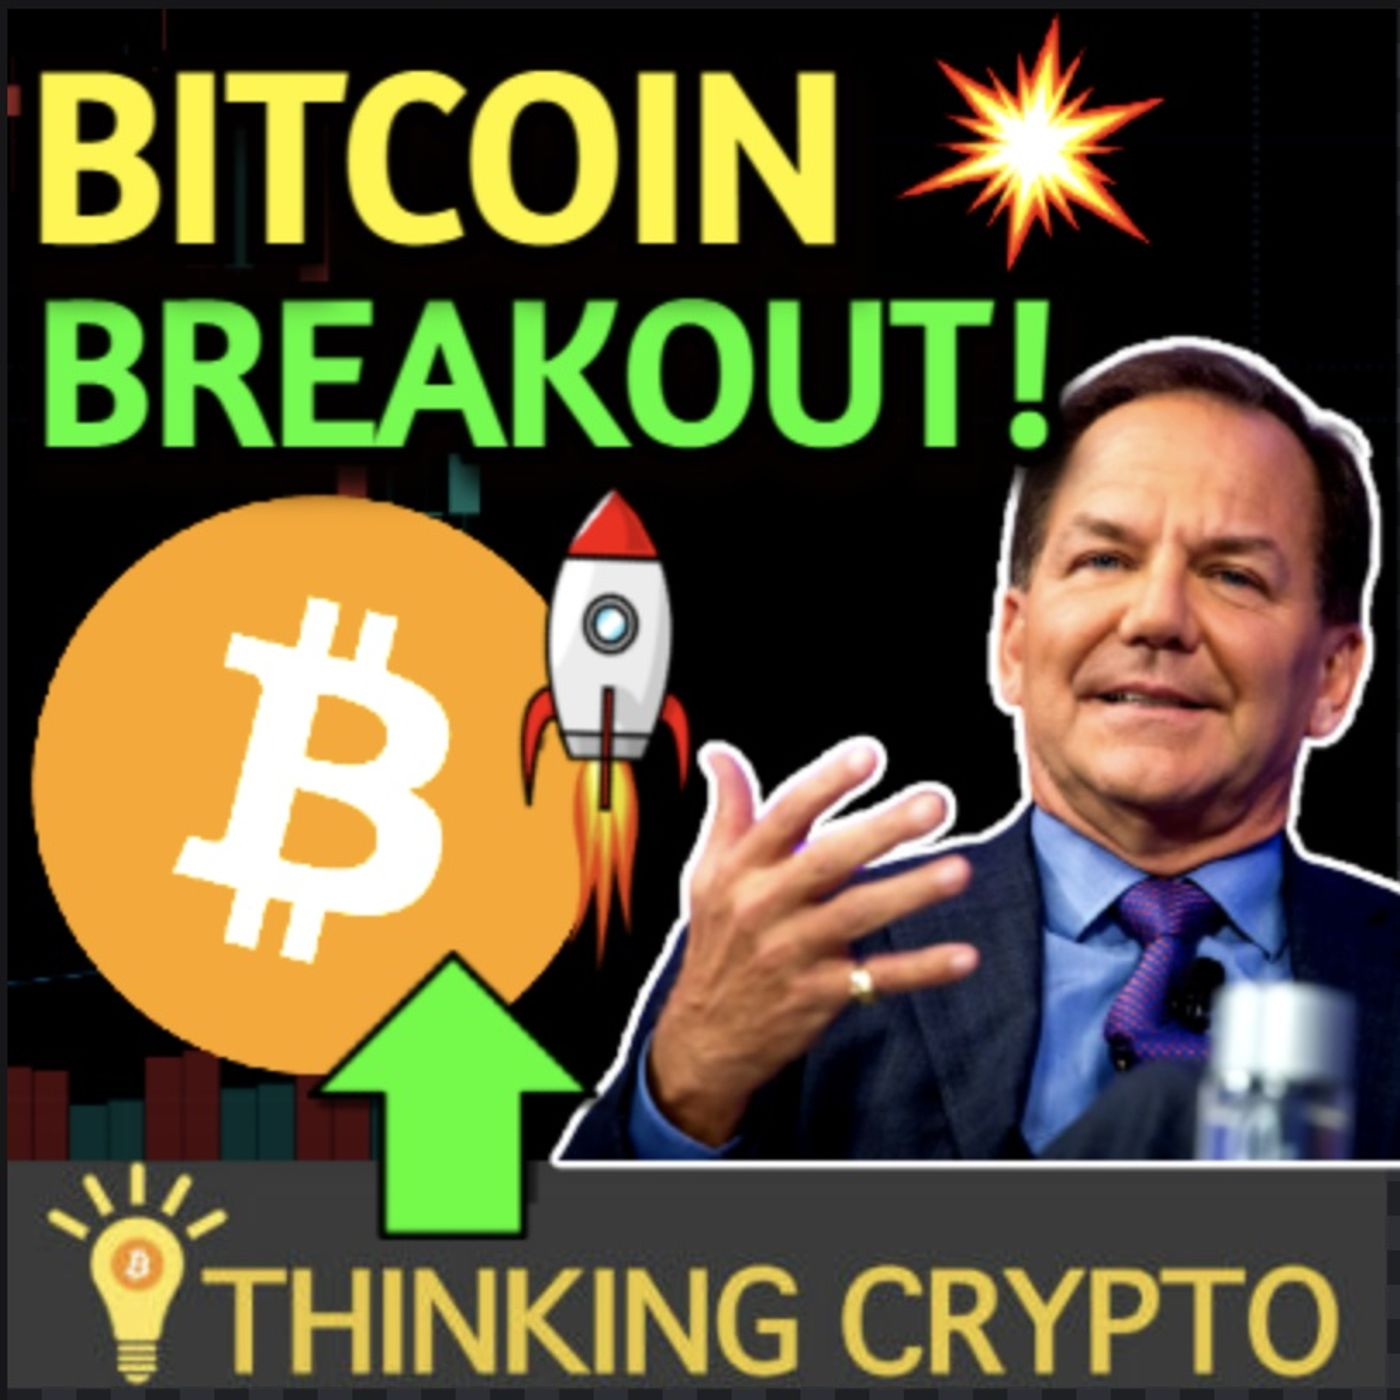 BITCOIN Breaks Out To $40K - Paul Tudor Jones Still Bullish on BTC - MicroStrategy To Buy $500M in BTC - Countries Warm Up To Crypto